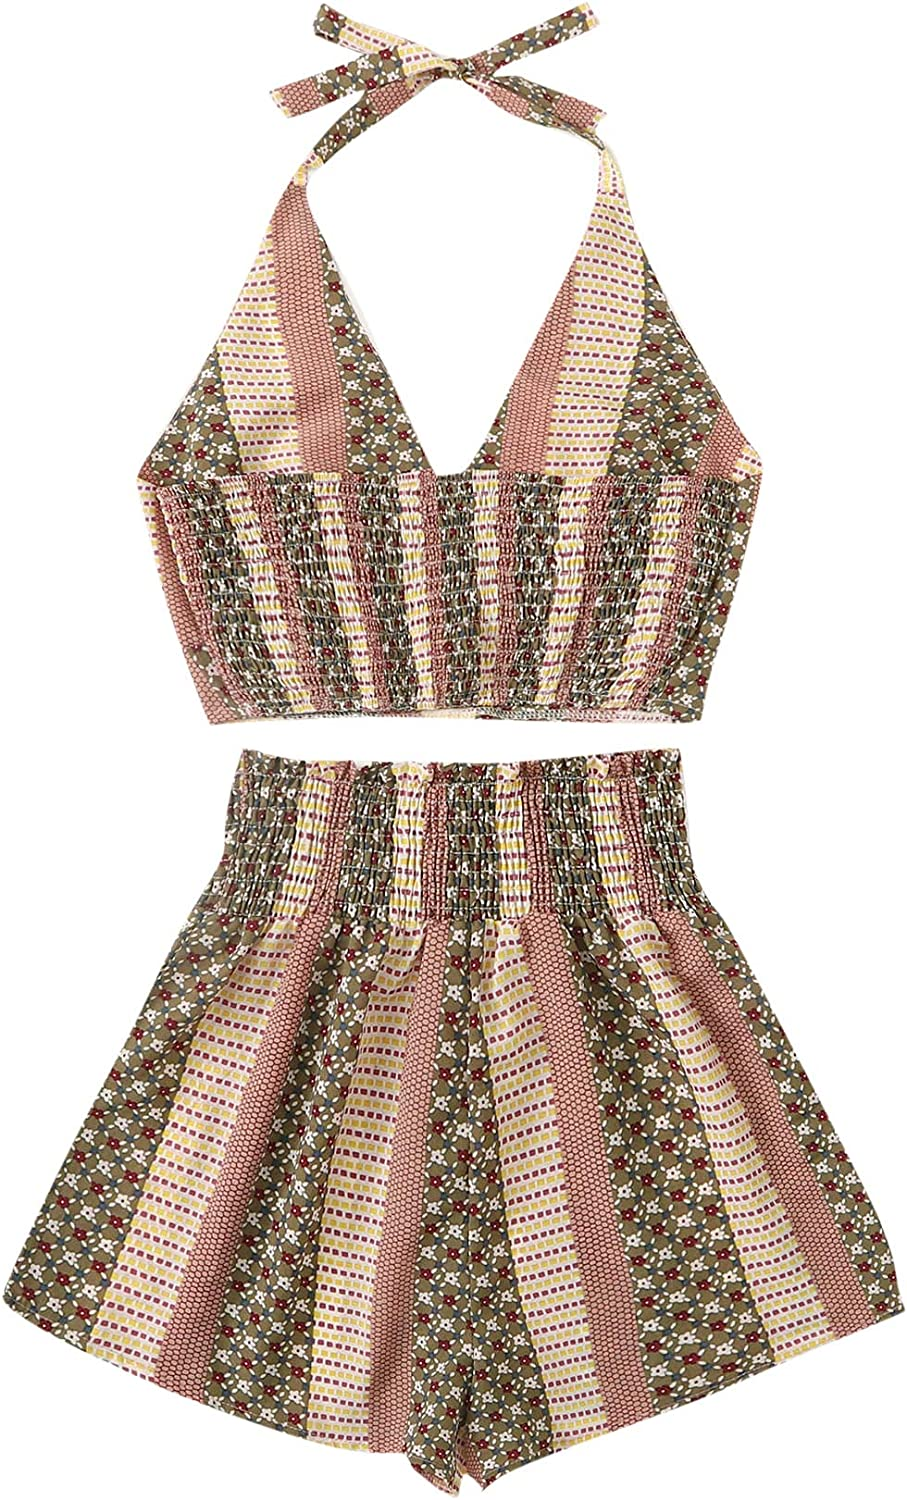 Milumia Womens Two Piece Floral and Geo Print Cami Halter Top Shirred Wide Leg Shorts Set